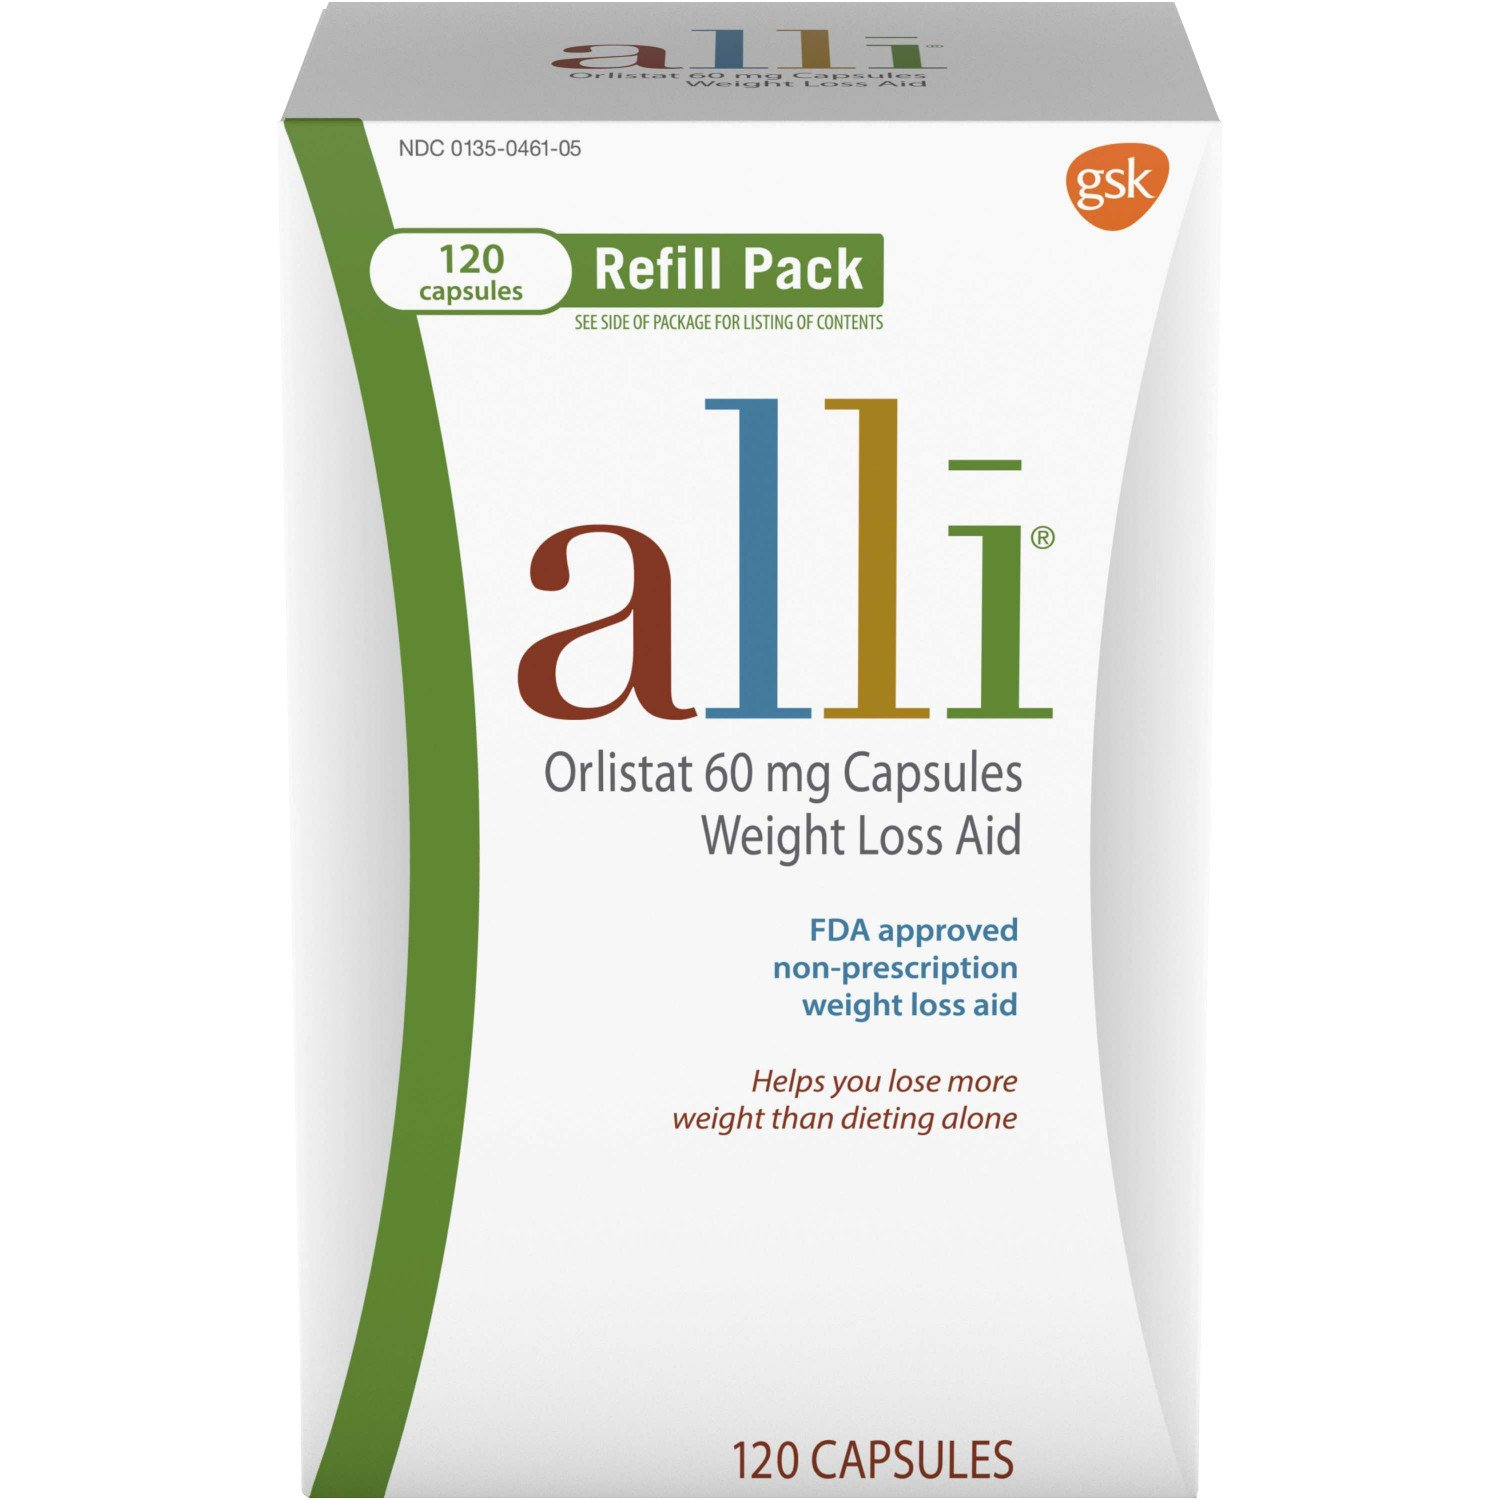 alli Diet Pills for Weight Loss, Orlistat 60 mg Capsules, Refill Pack 120 count